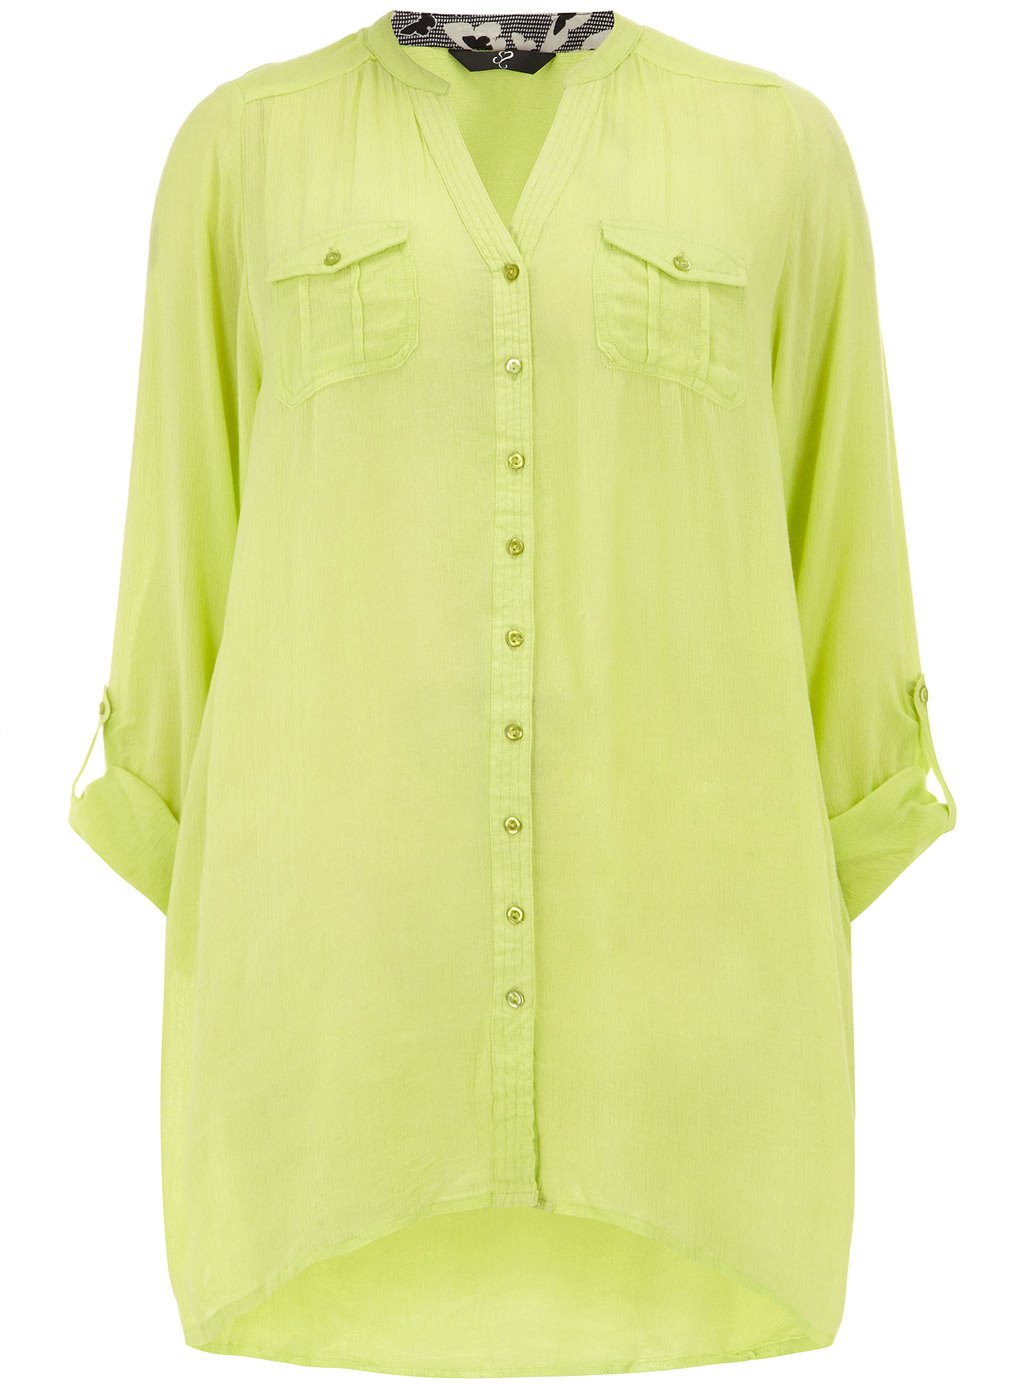 Lime Crinkle Shirt - pattern: plain; length: below the bottom; bust detail: pocket detail at bust; style: blouse; predominant colour: lime; occasions: casual, holiday, creative work; neckline: collarstand & mandarin with v-neck; fibres: viscose/rayon - 100%; fit: loose; back detail: longer hem at back than at front; sleeve length: 3/4 length; sleeve style: standard; texture group: cotton feel fabrics; pattern type: fabric; trends: hot brights; season: s/s 2014